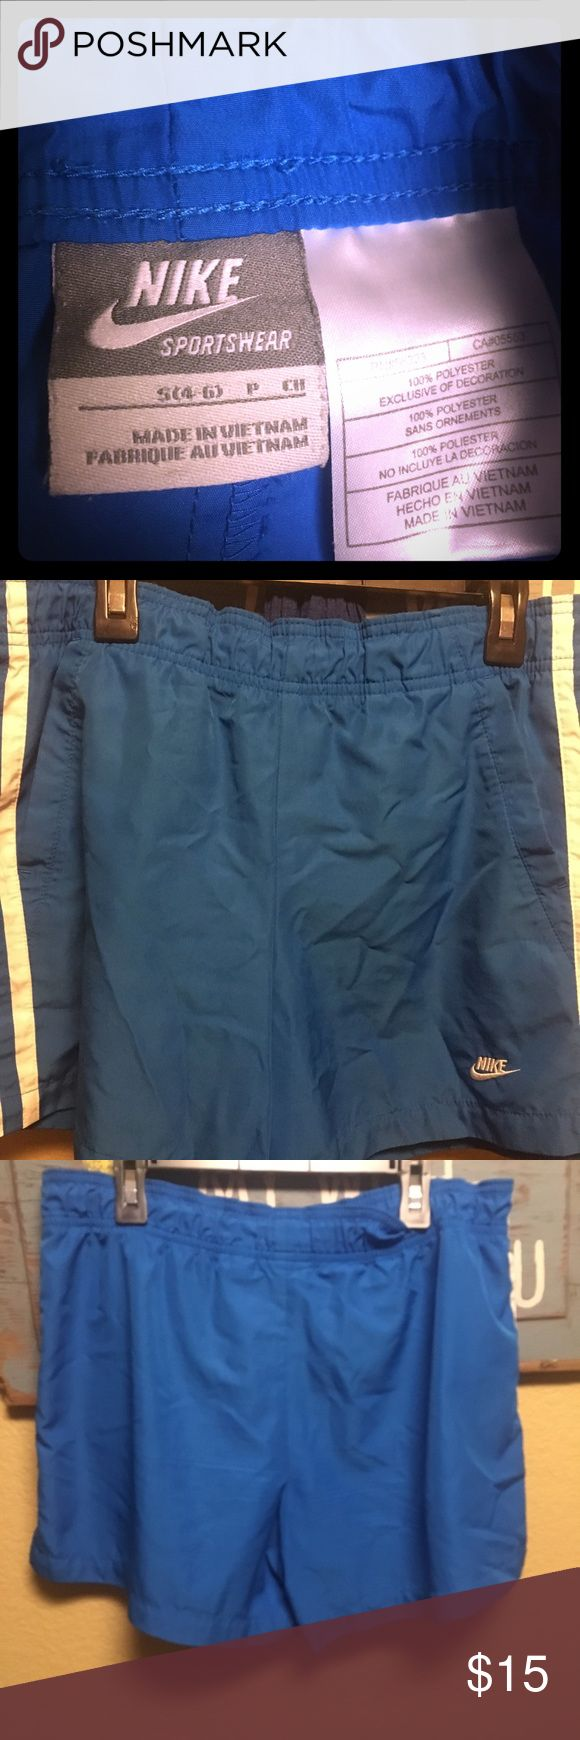 Nike Royal Blue shorts Royal blue nike shorts. Size states Small , fits more like a large. Side pockets & working drawstring. Great used condition Nike Shorts